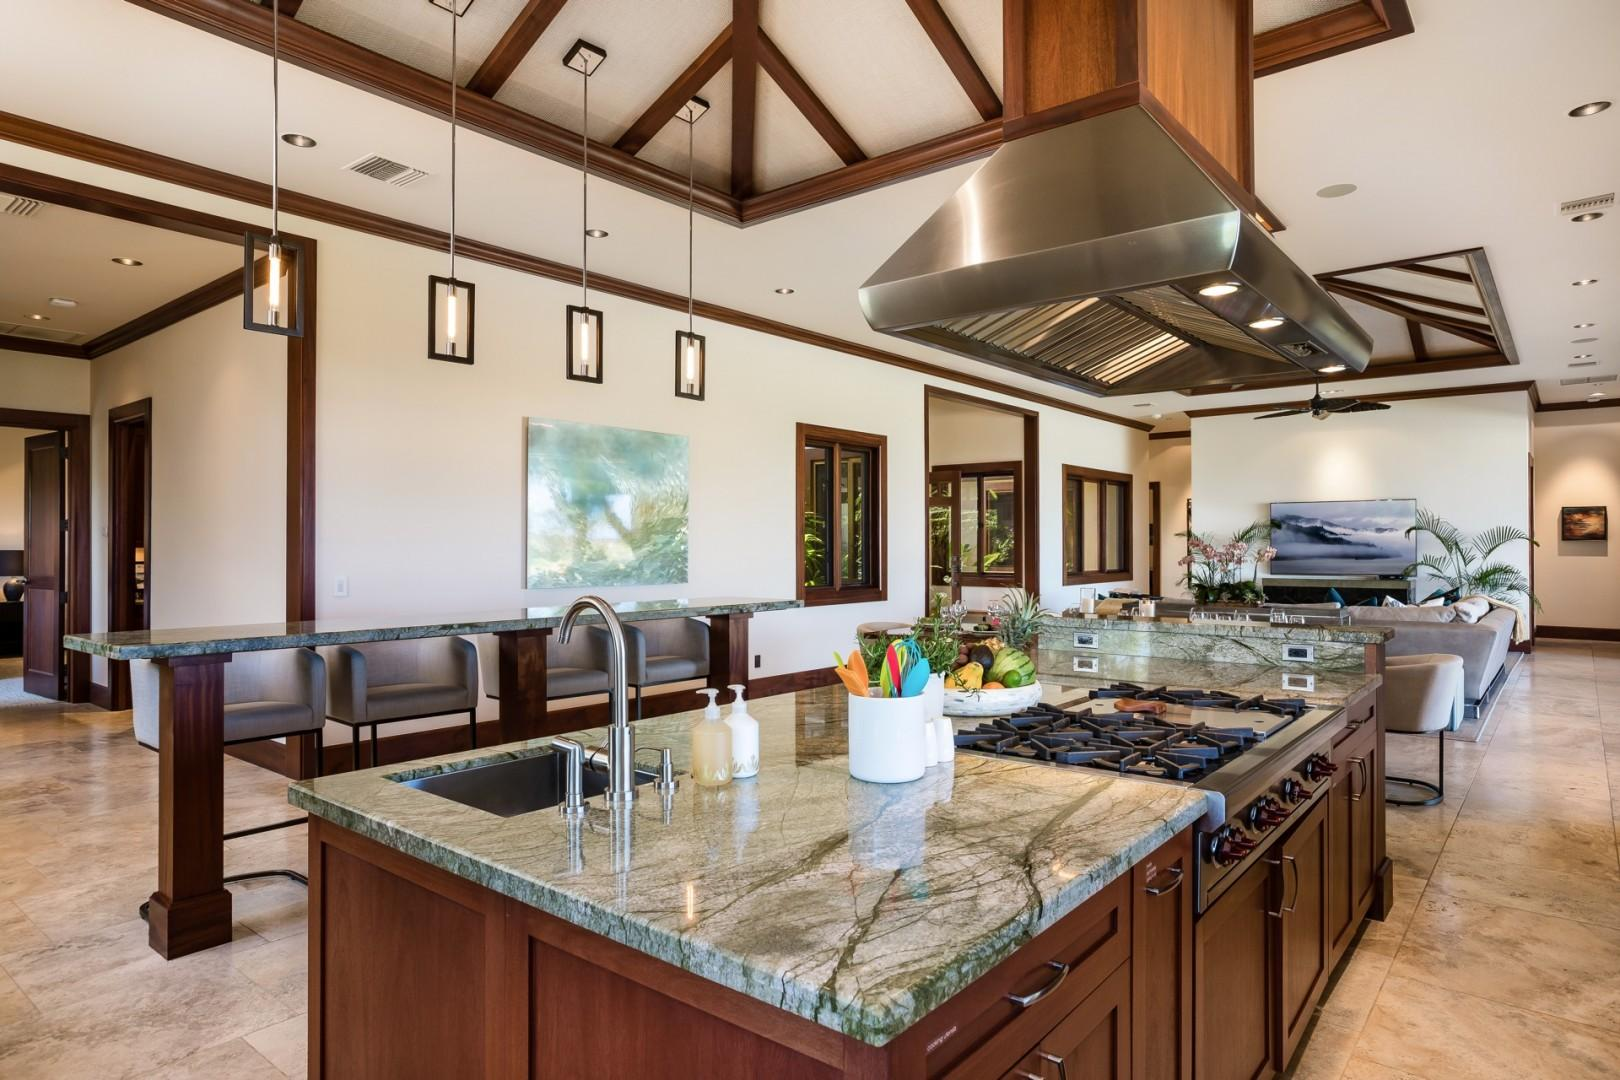 Beautiful Ayers green granite slabs in fully equipped kitchen with top-tier appliances.